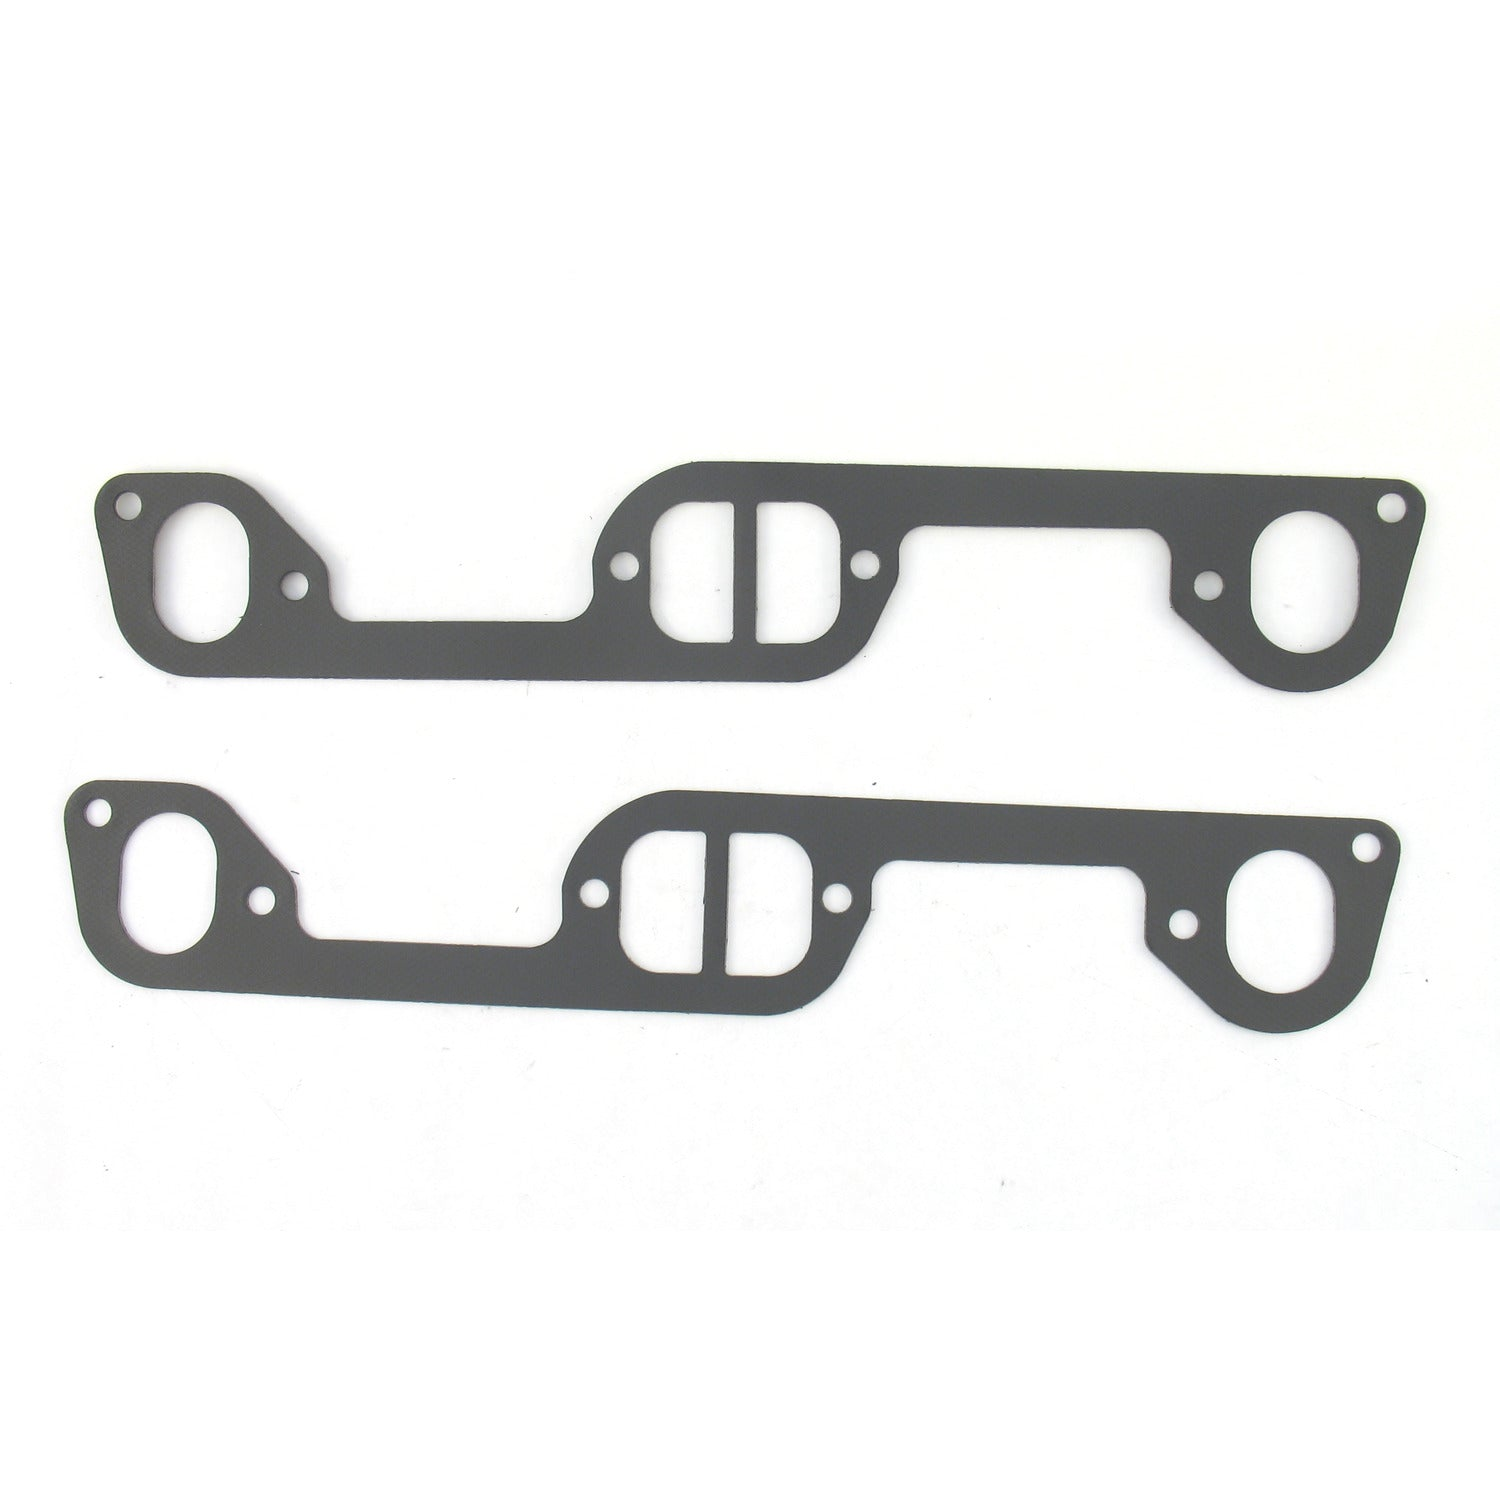 Doug's Headers HG9342 Pontiac 326-455 D-port  Header Flange Gaskets